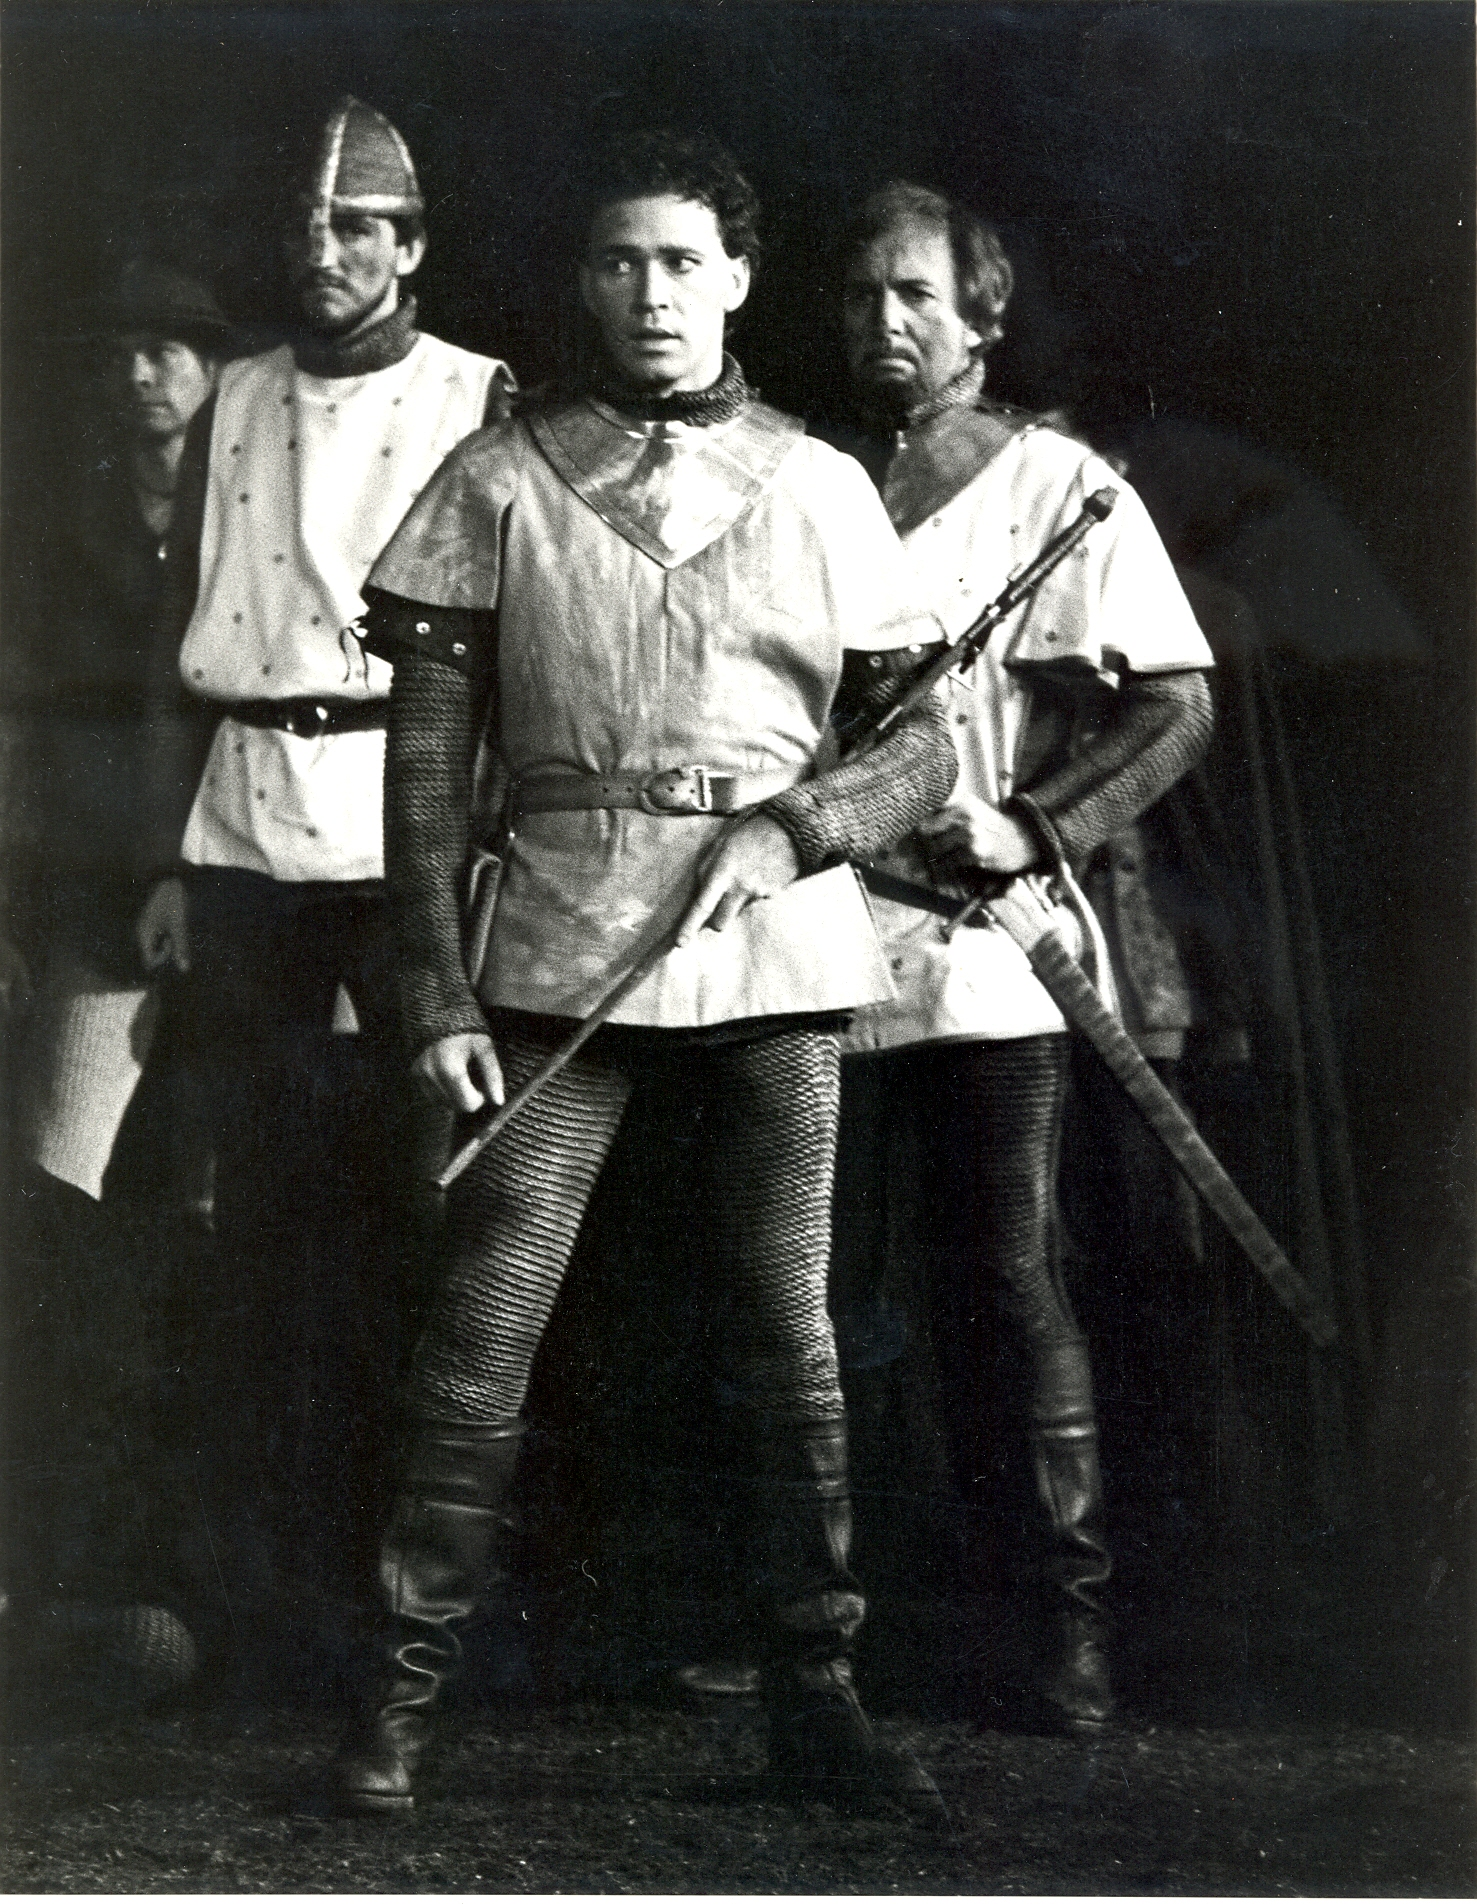 the significant role of the chorus in henry v by william shakespeare The role of the chorus in henry v by william shakespeare essay 1985 april 27 to 1978 december 3 from uk the in transmitted saw messina when 1975 in began development shakespeare, william of plays the of adaptations television british of series a is shakespeare television bbc the episodes thirty-seven and seasons seven spanned series the television, bbc by broadcast and messina cedric by .